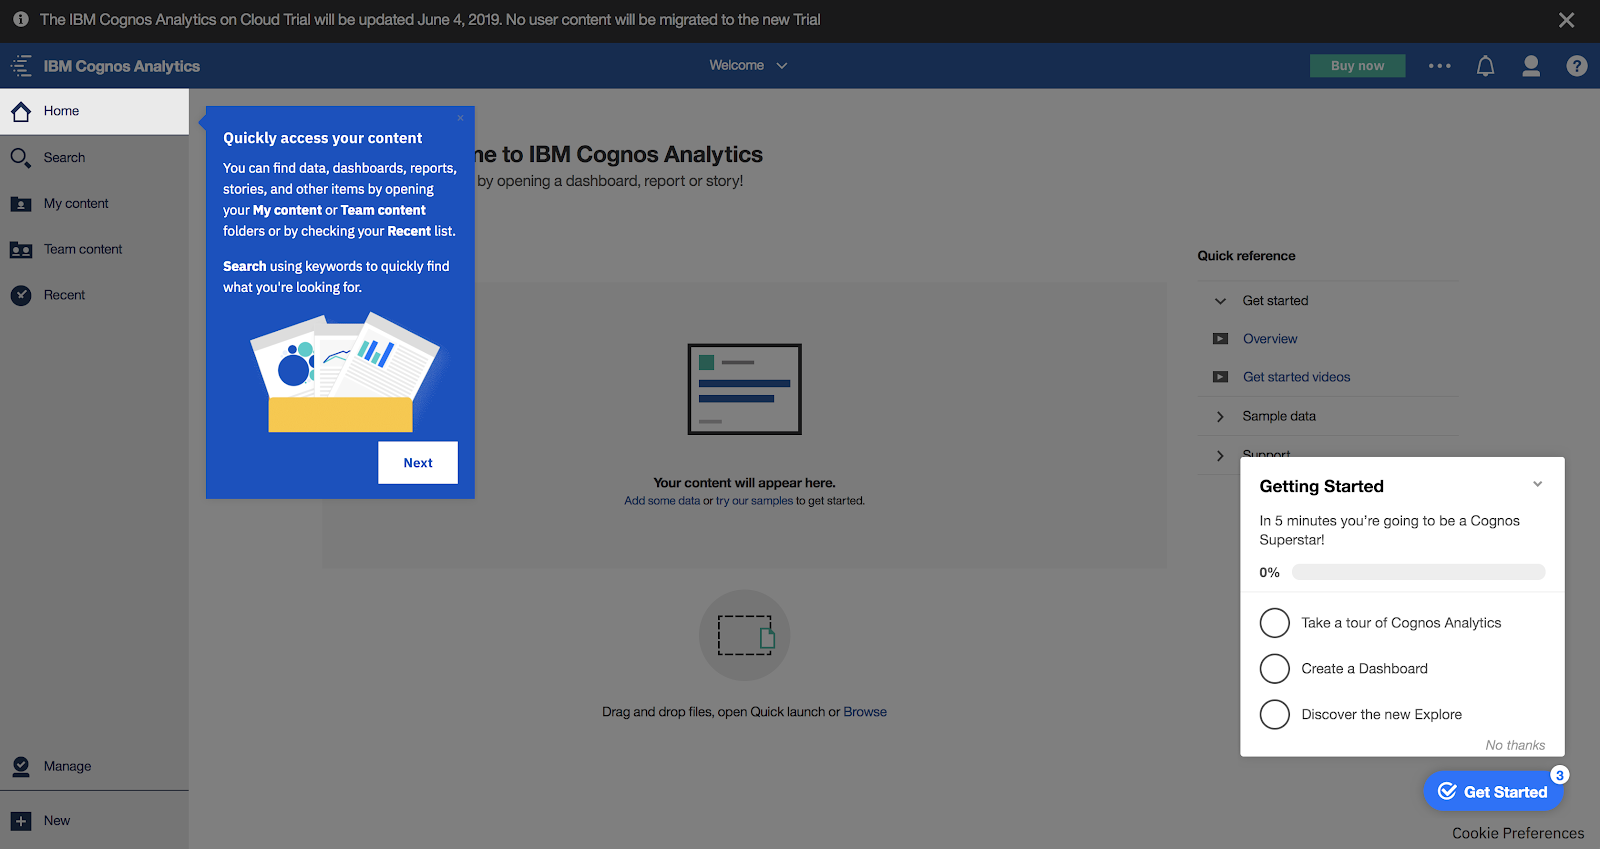 This is a screenshot image of IBM Cognos Analytics tool's user onboarding experience. This is a great example of conumer grade enterprise UX. This image shows an IBM tooltip example along with an onboarding checklist example